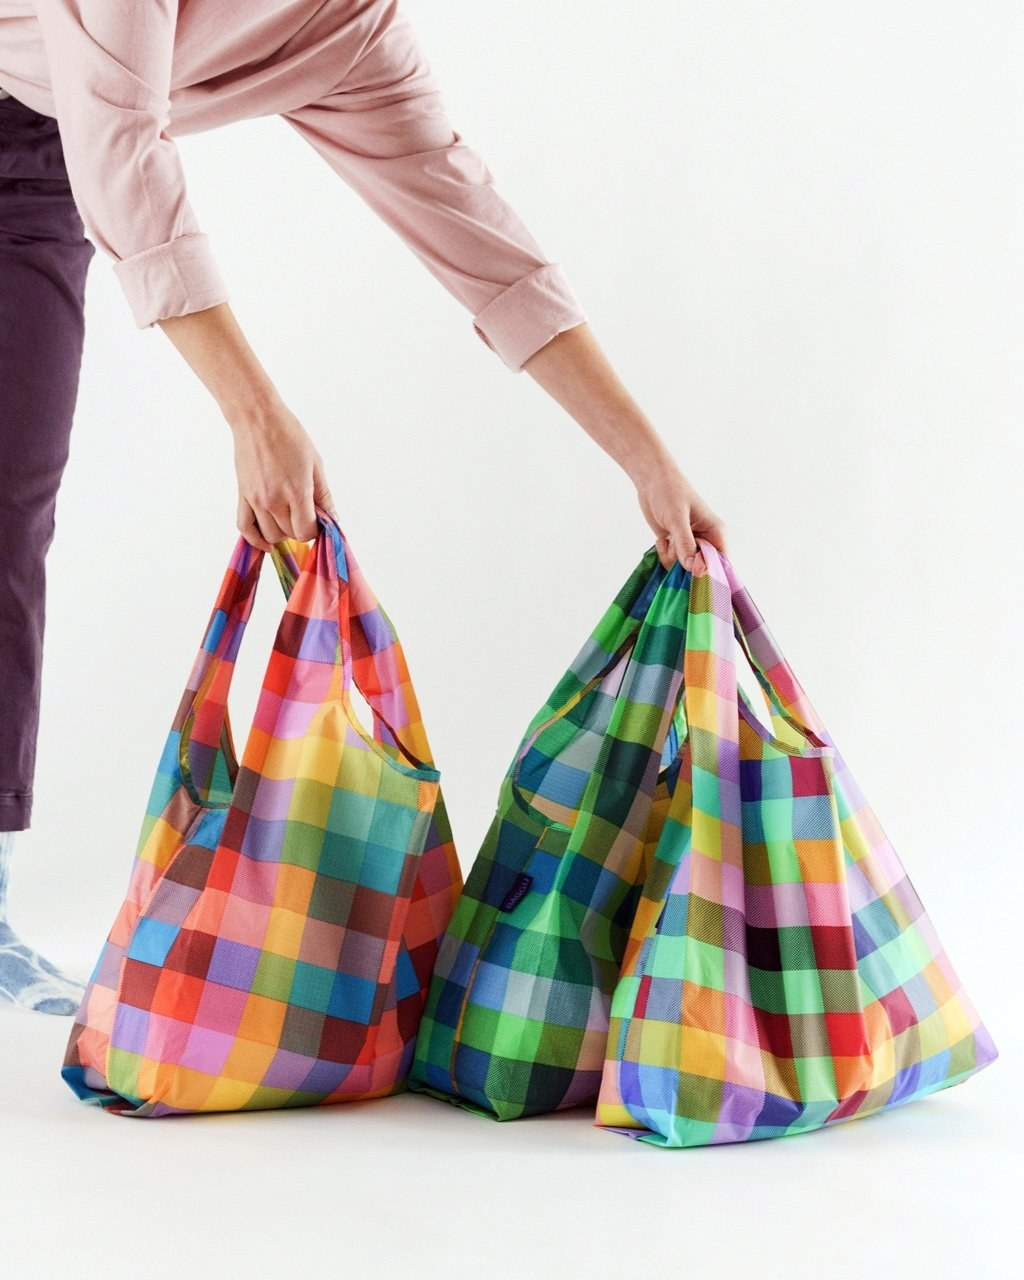 A person holding a bunch of full shopping bags